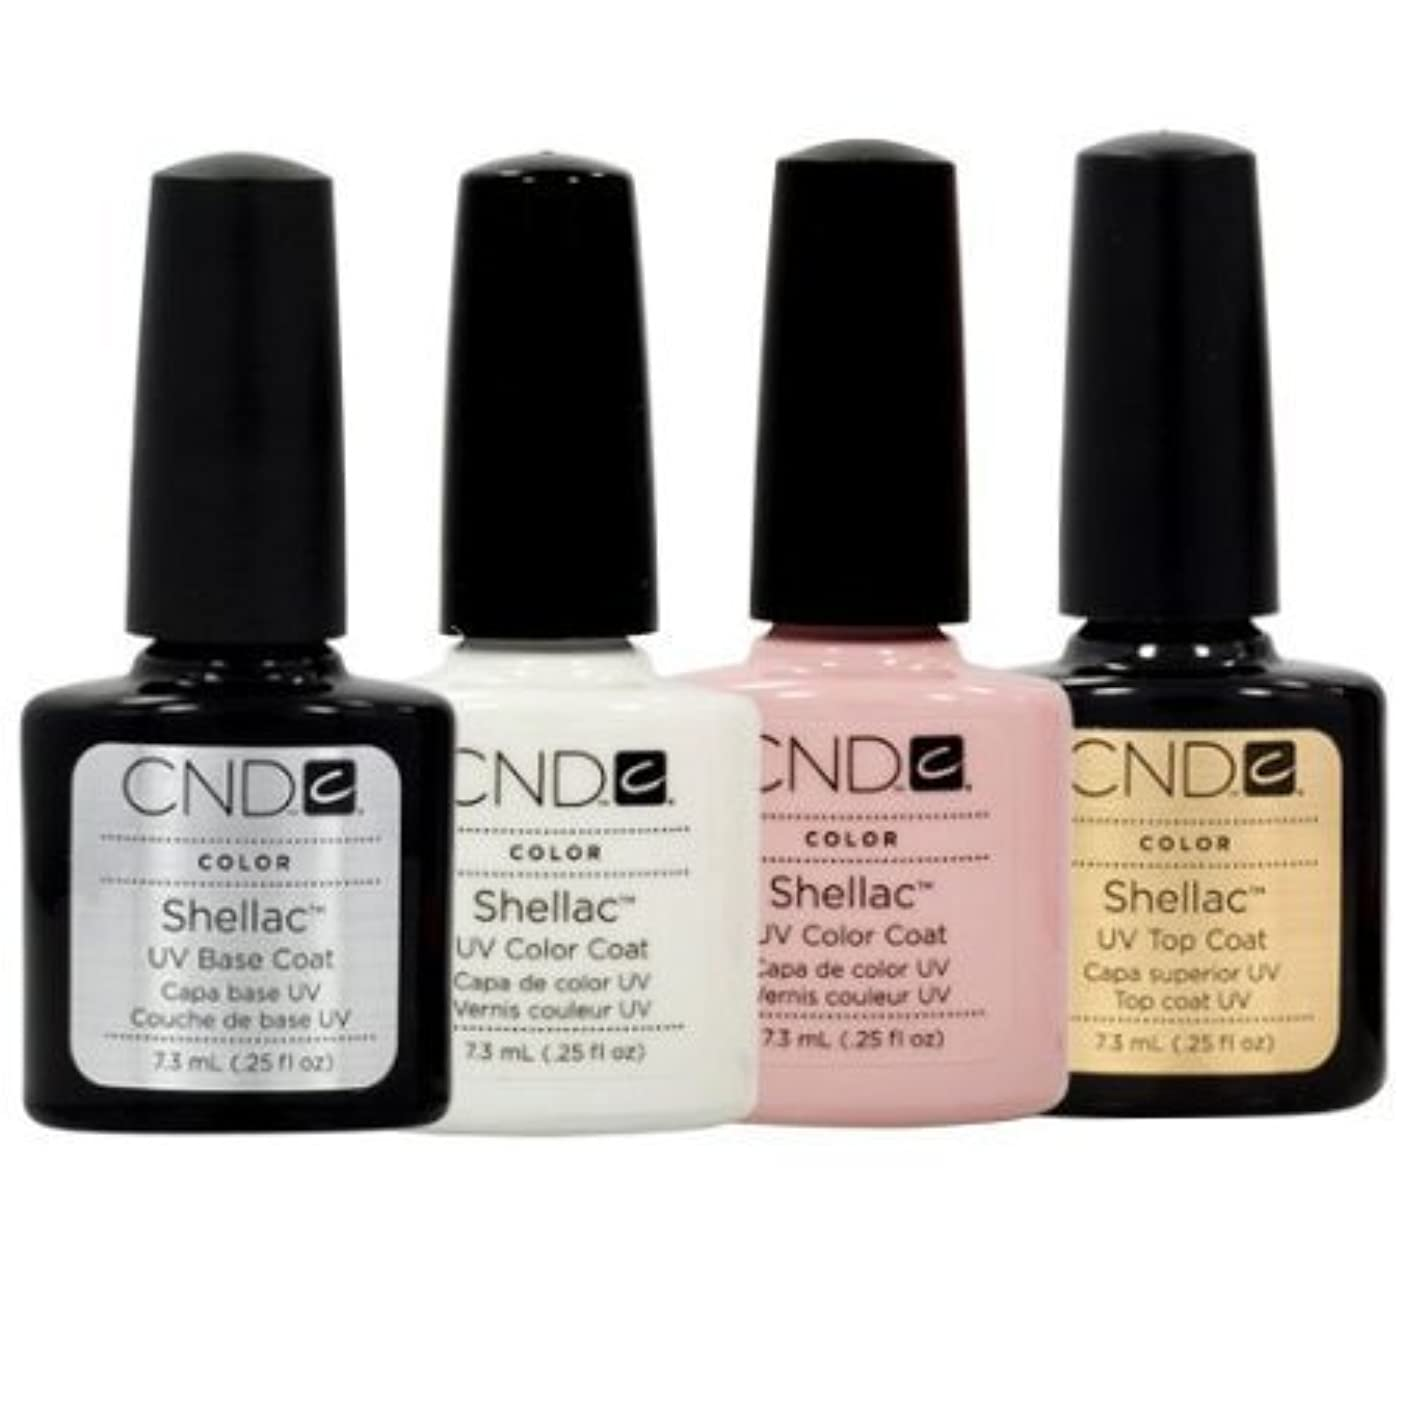 ラブカテナピケCND Shellac French Manicure Kit Base Top Coat Color White Pink Nail Polish Gel by CND - Creative Nail Design [...